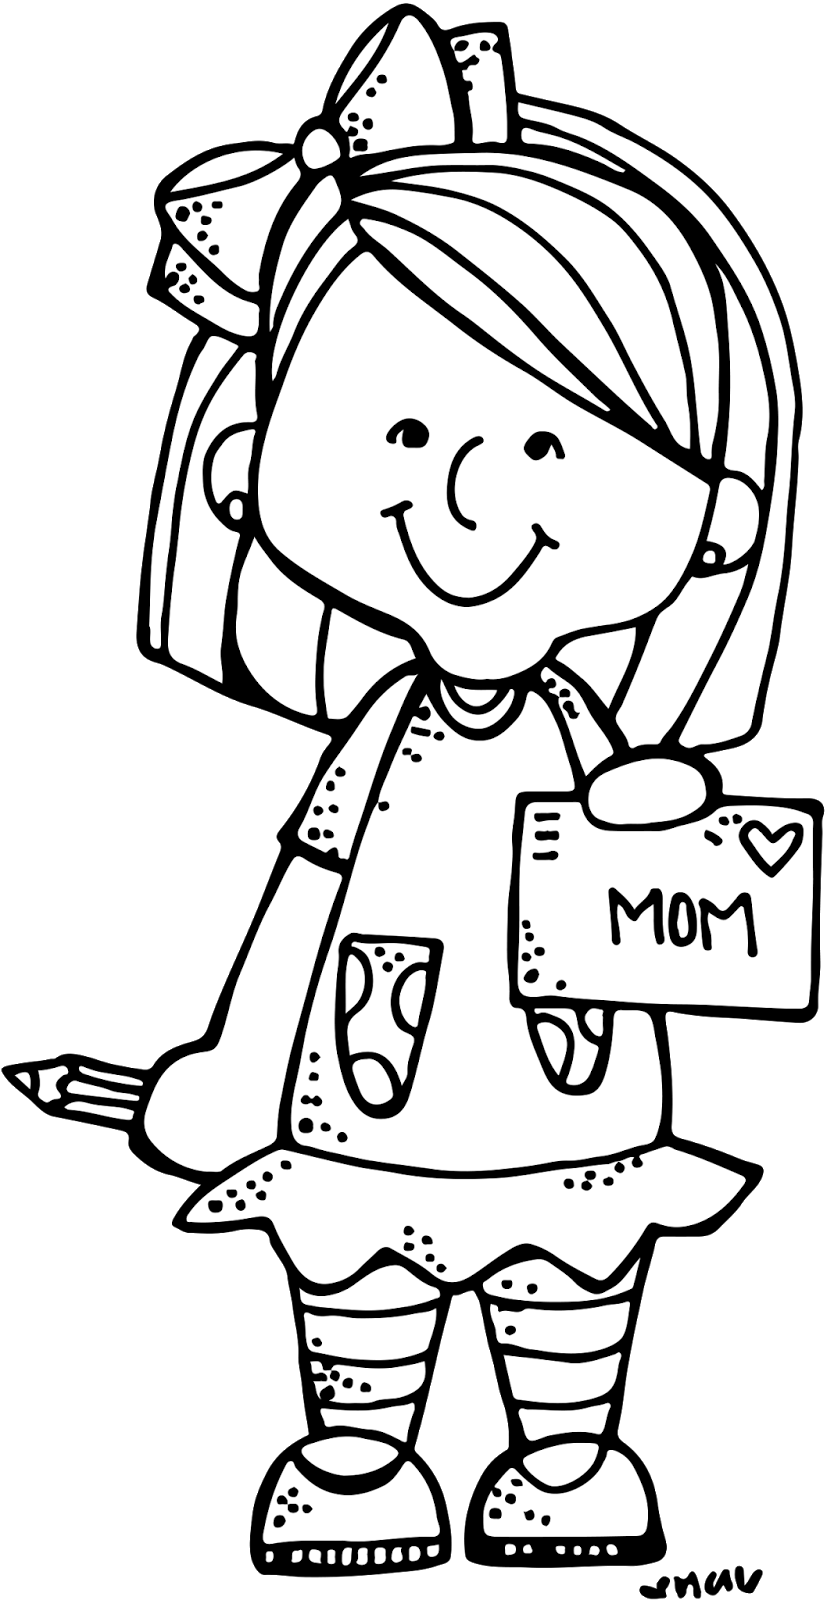 Honor Thy Parents Both Of My Parents Have Passed Away So My Job Today Is To Talk About Them Wi Coloring Pages For Girls Summer Crafts For Kids Fish Crafts